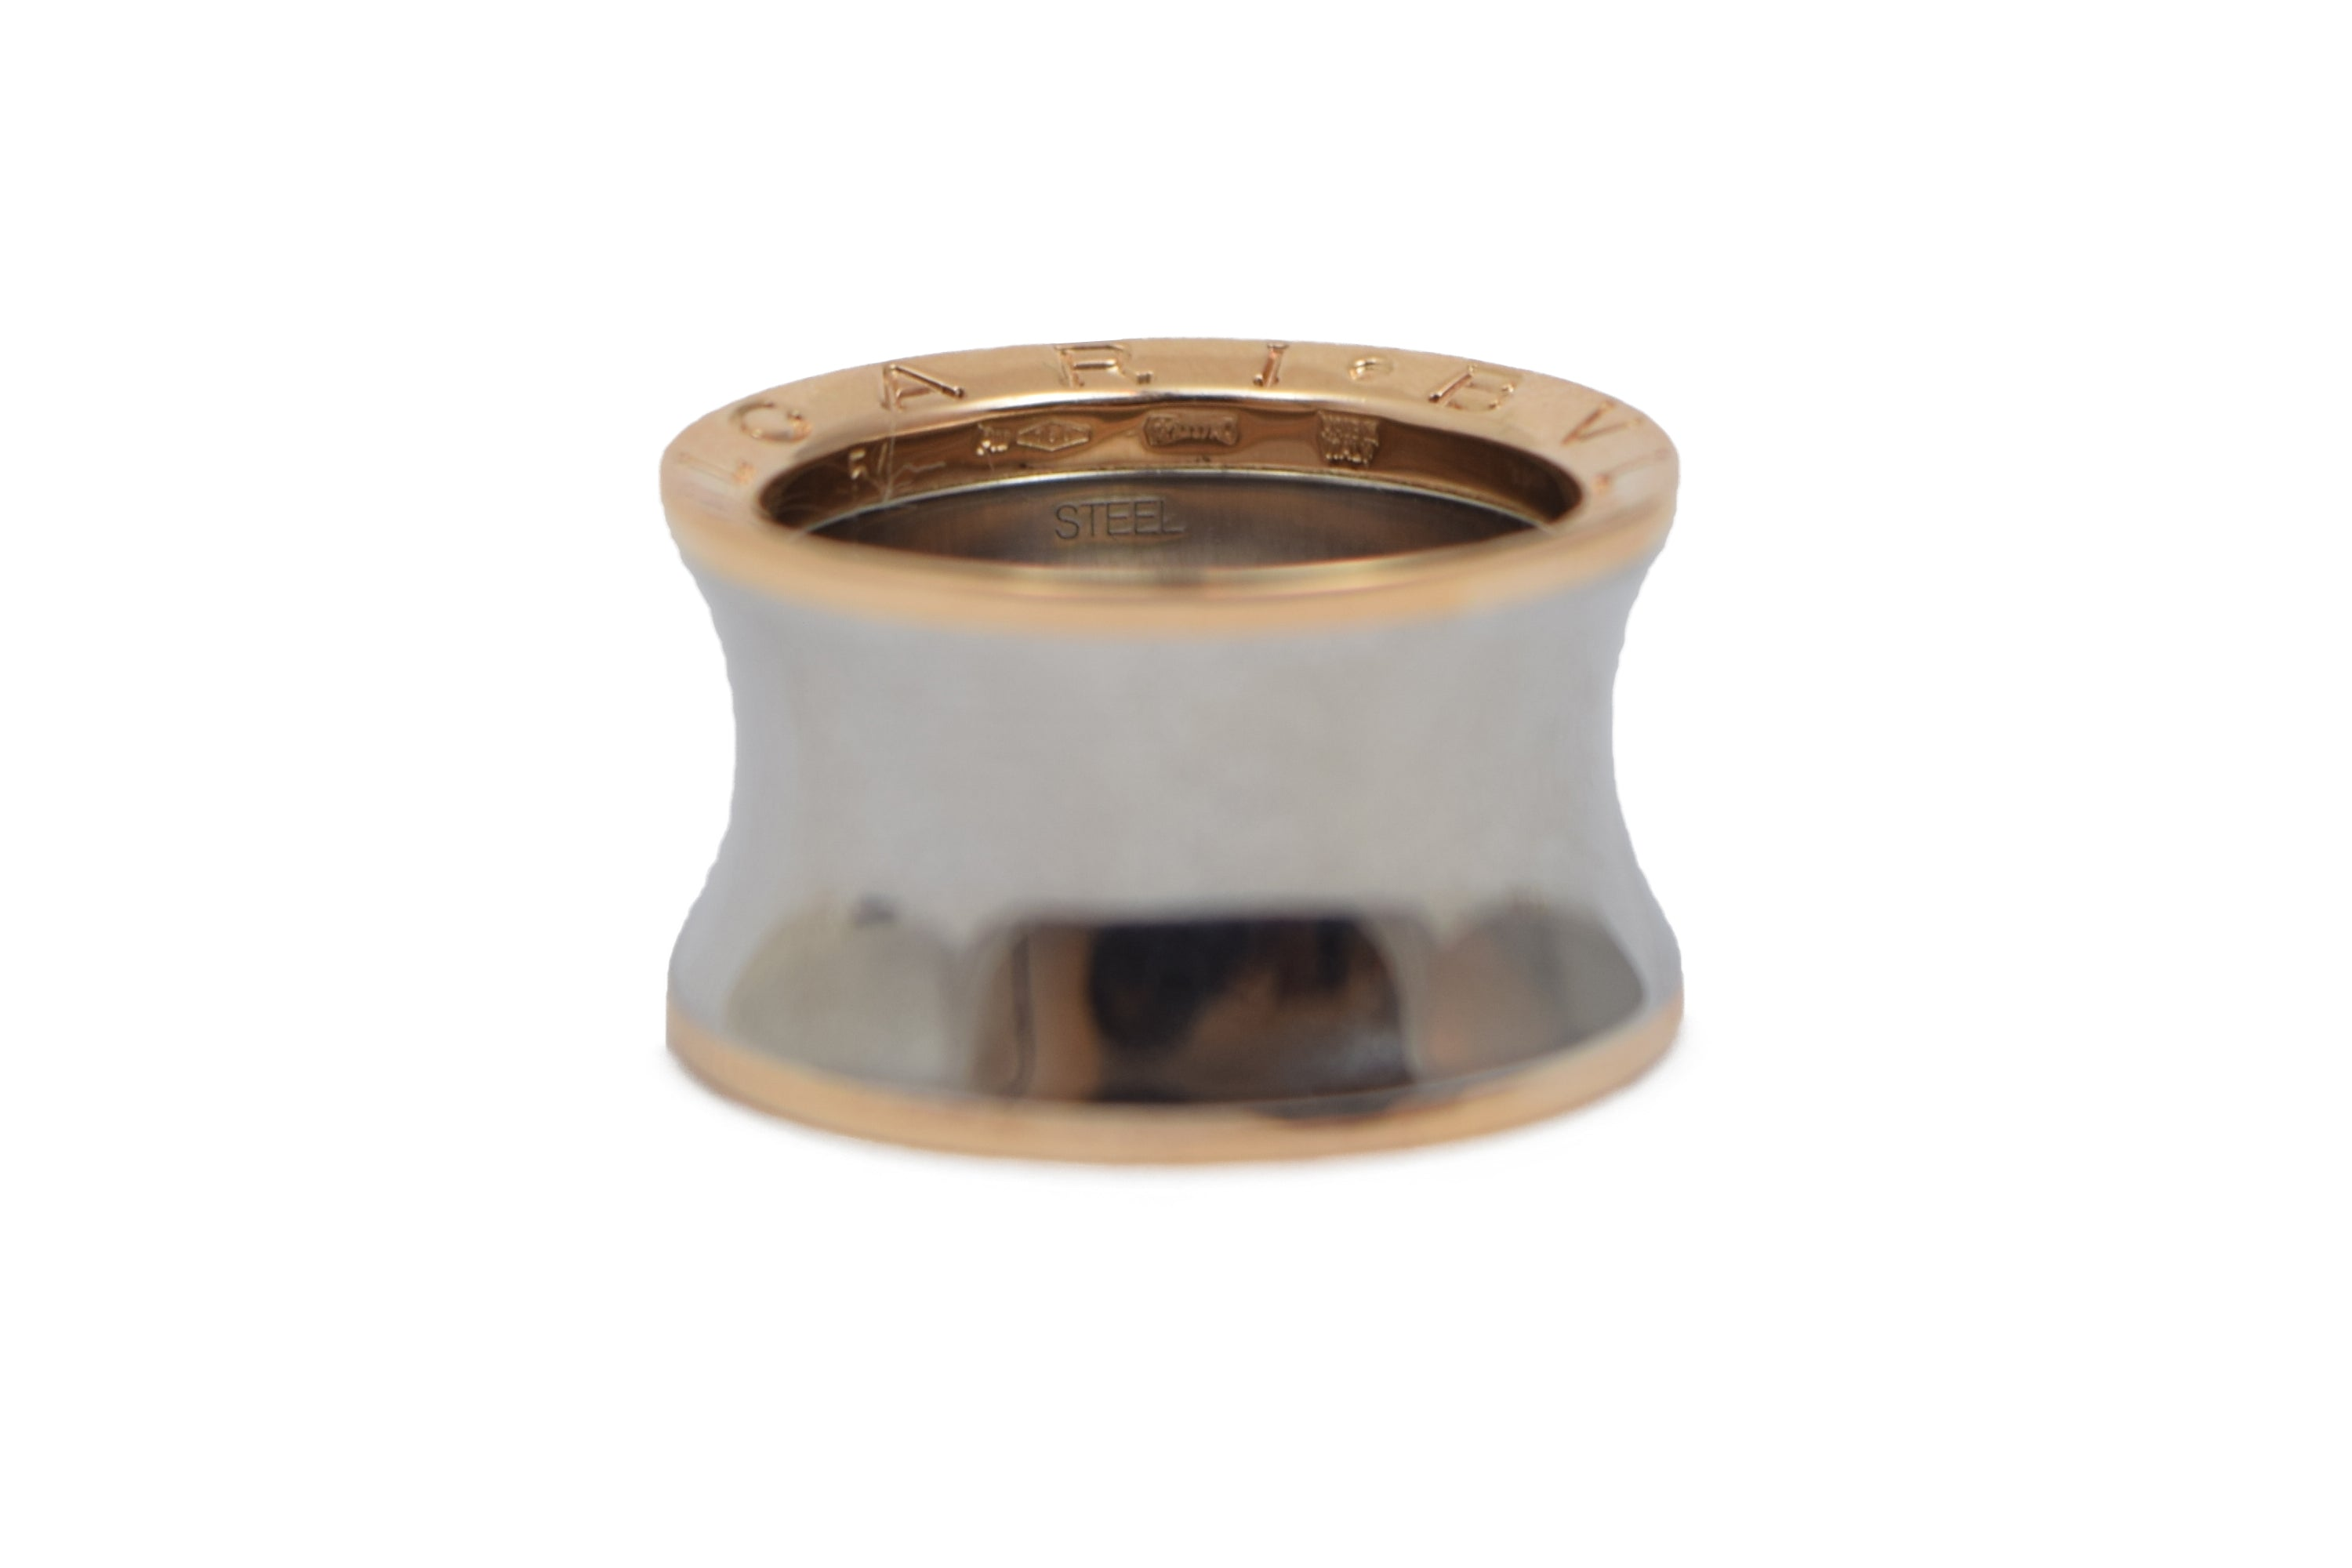 Bvlgari Anish Kapoor 18k Ring - US 12